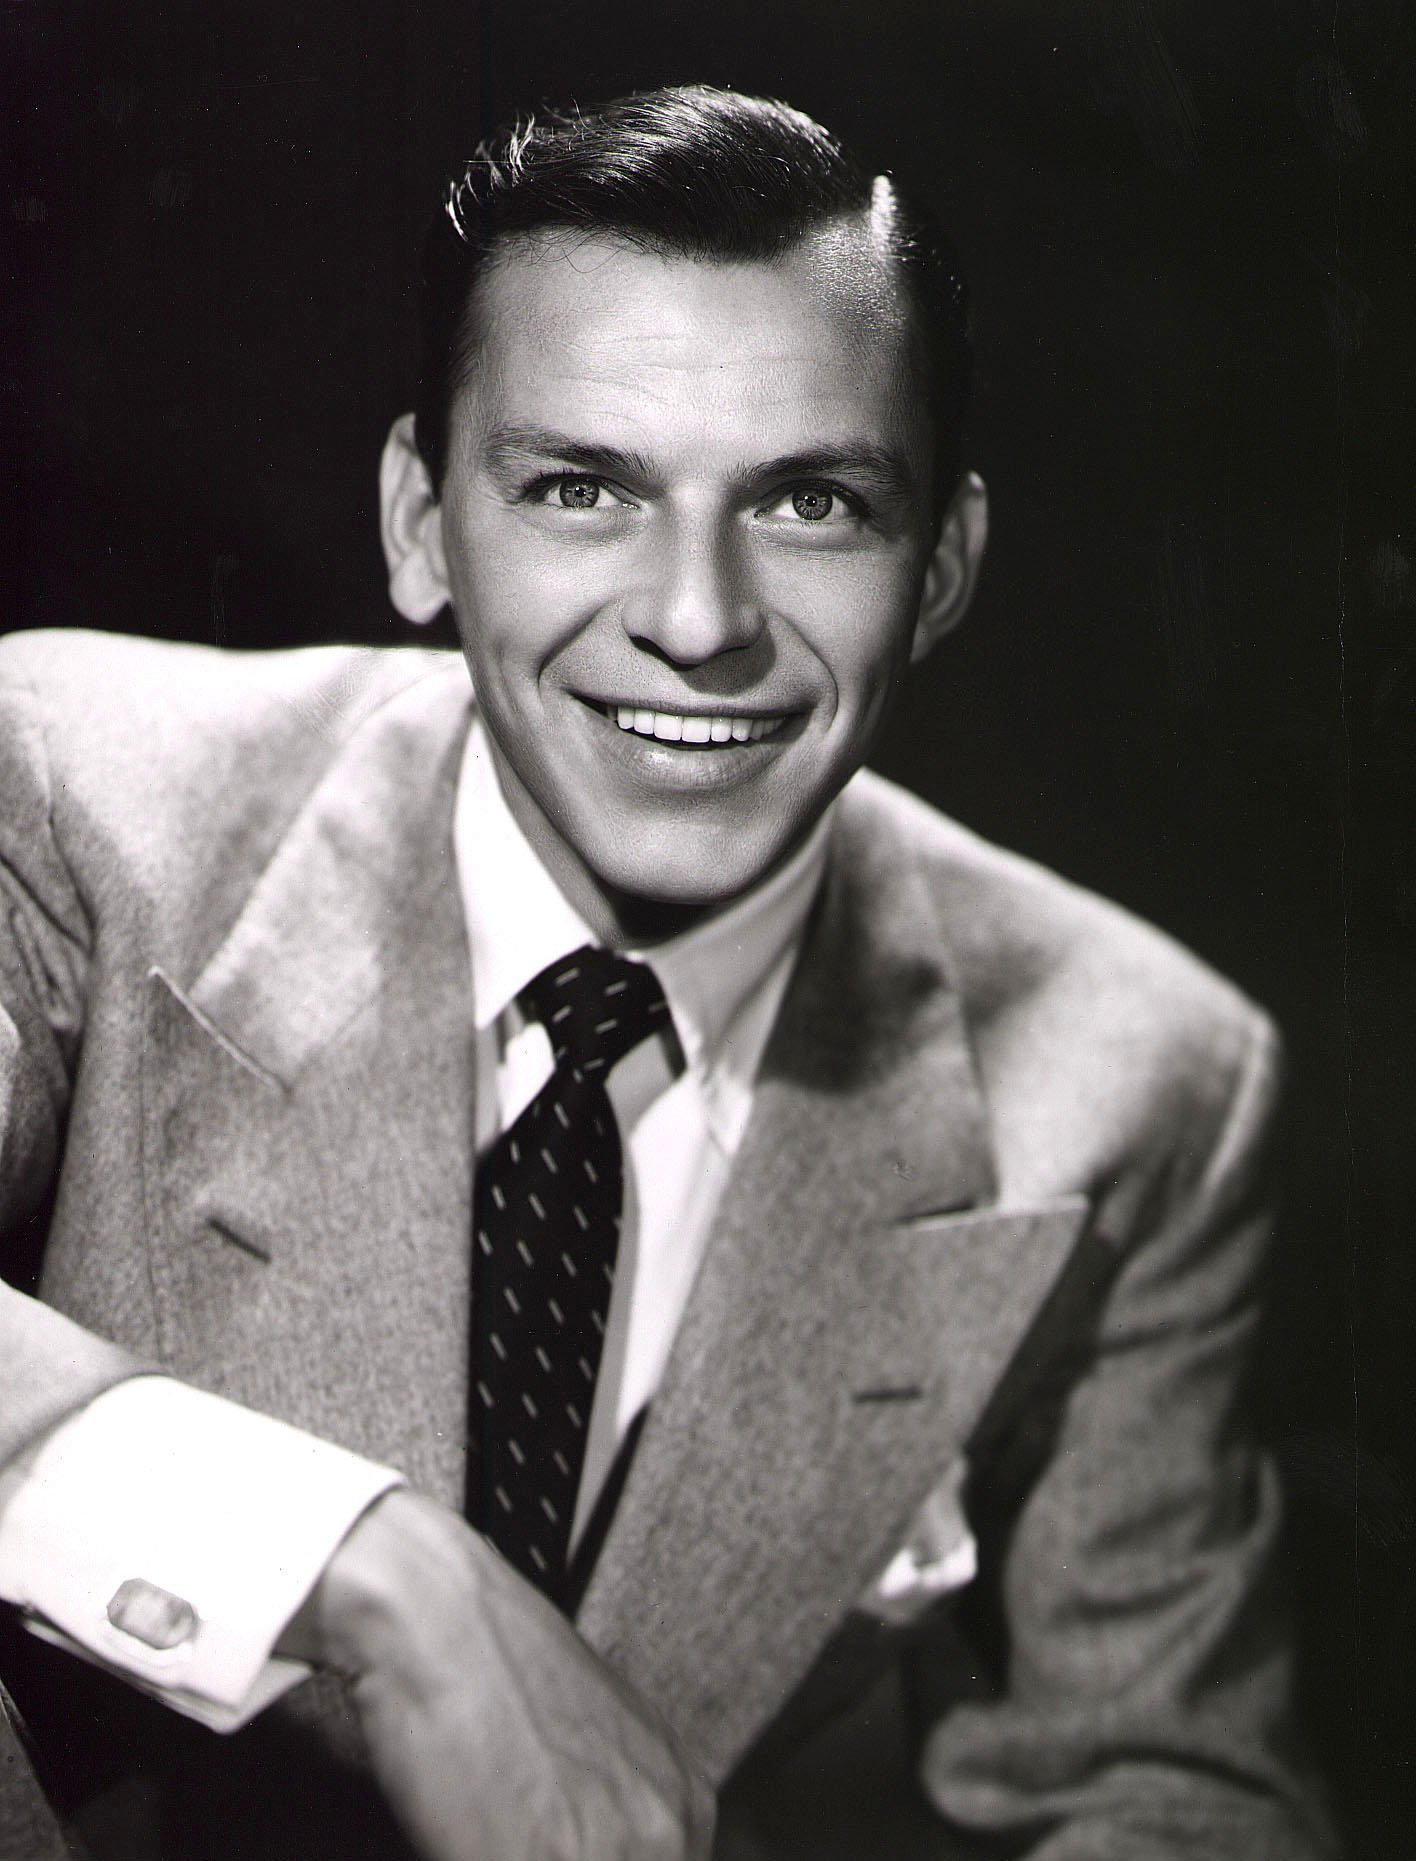 Promotional studio portrait of American singer and actor Frank Sinatra, 1950s. | Photo: GettyImages